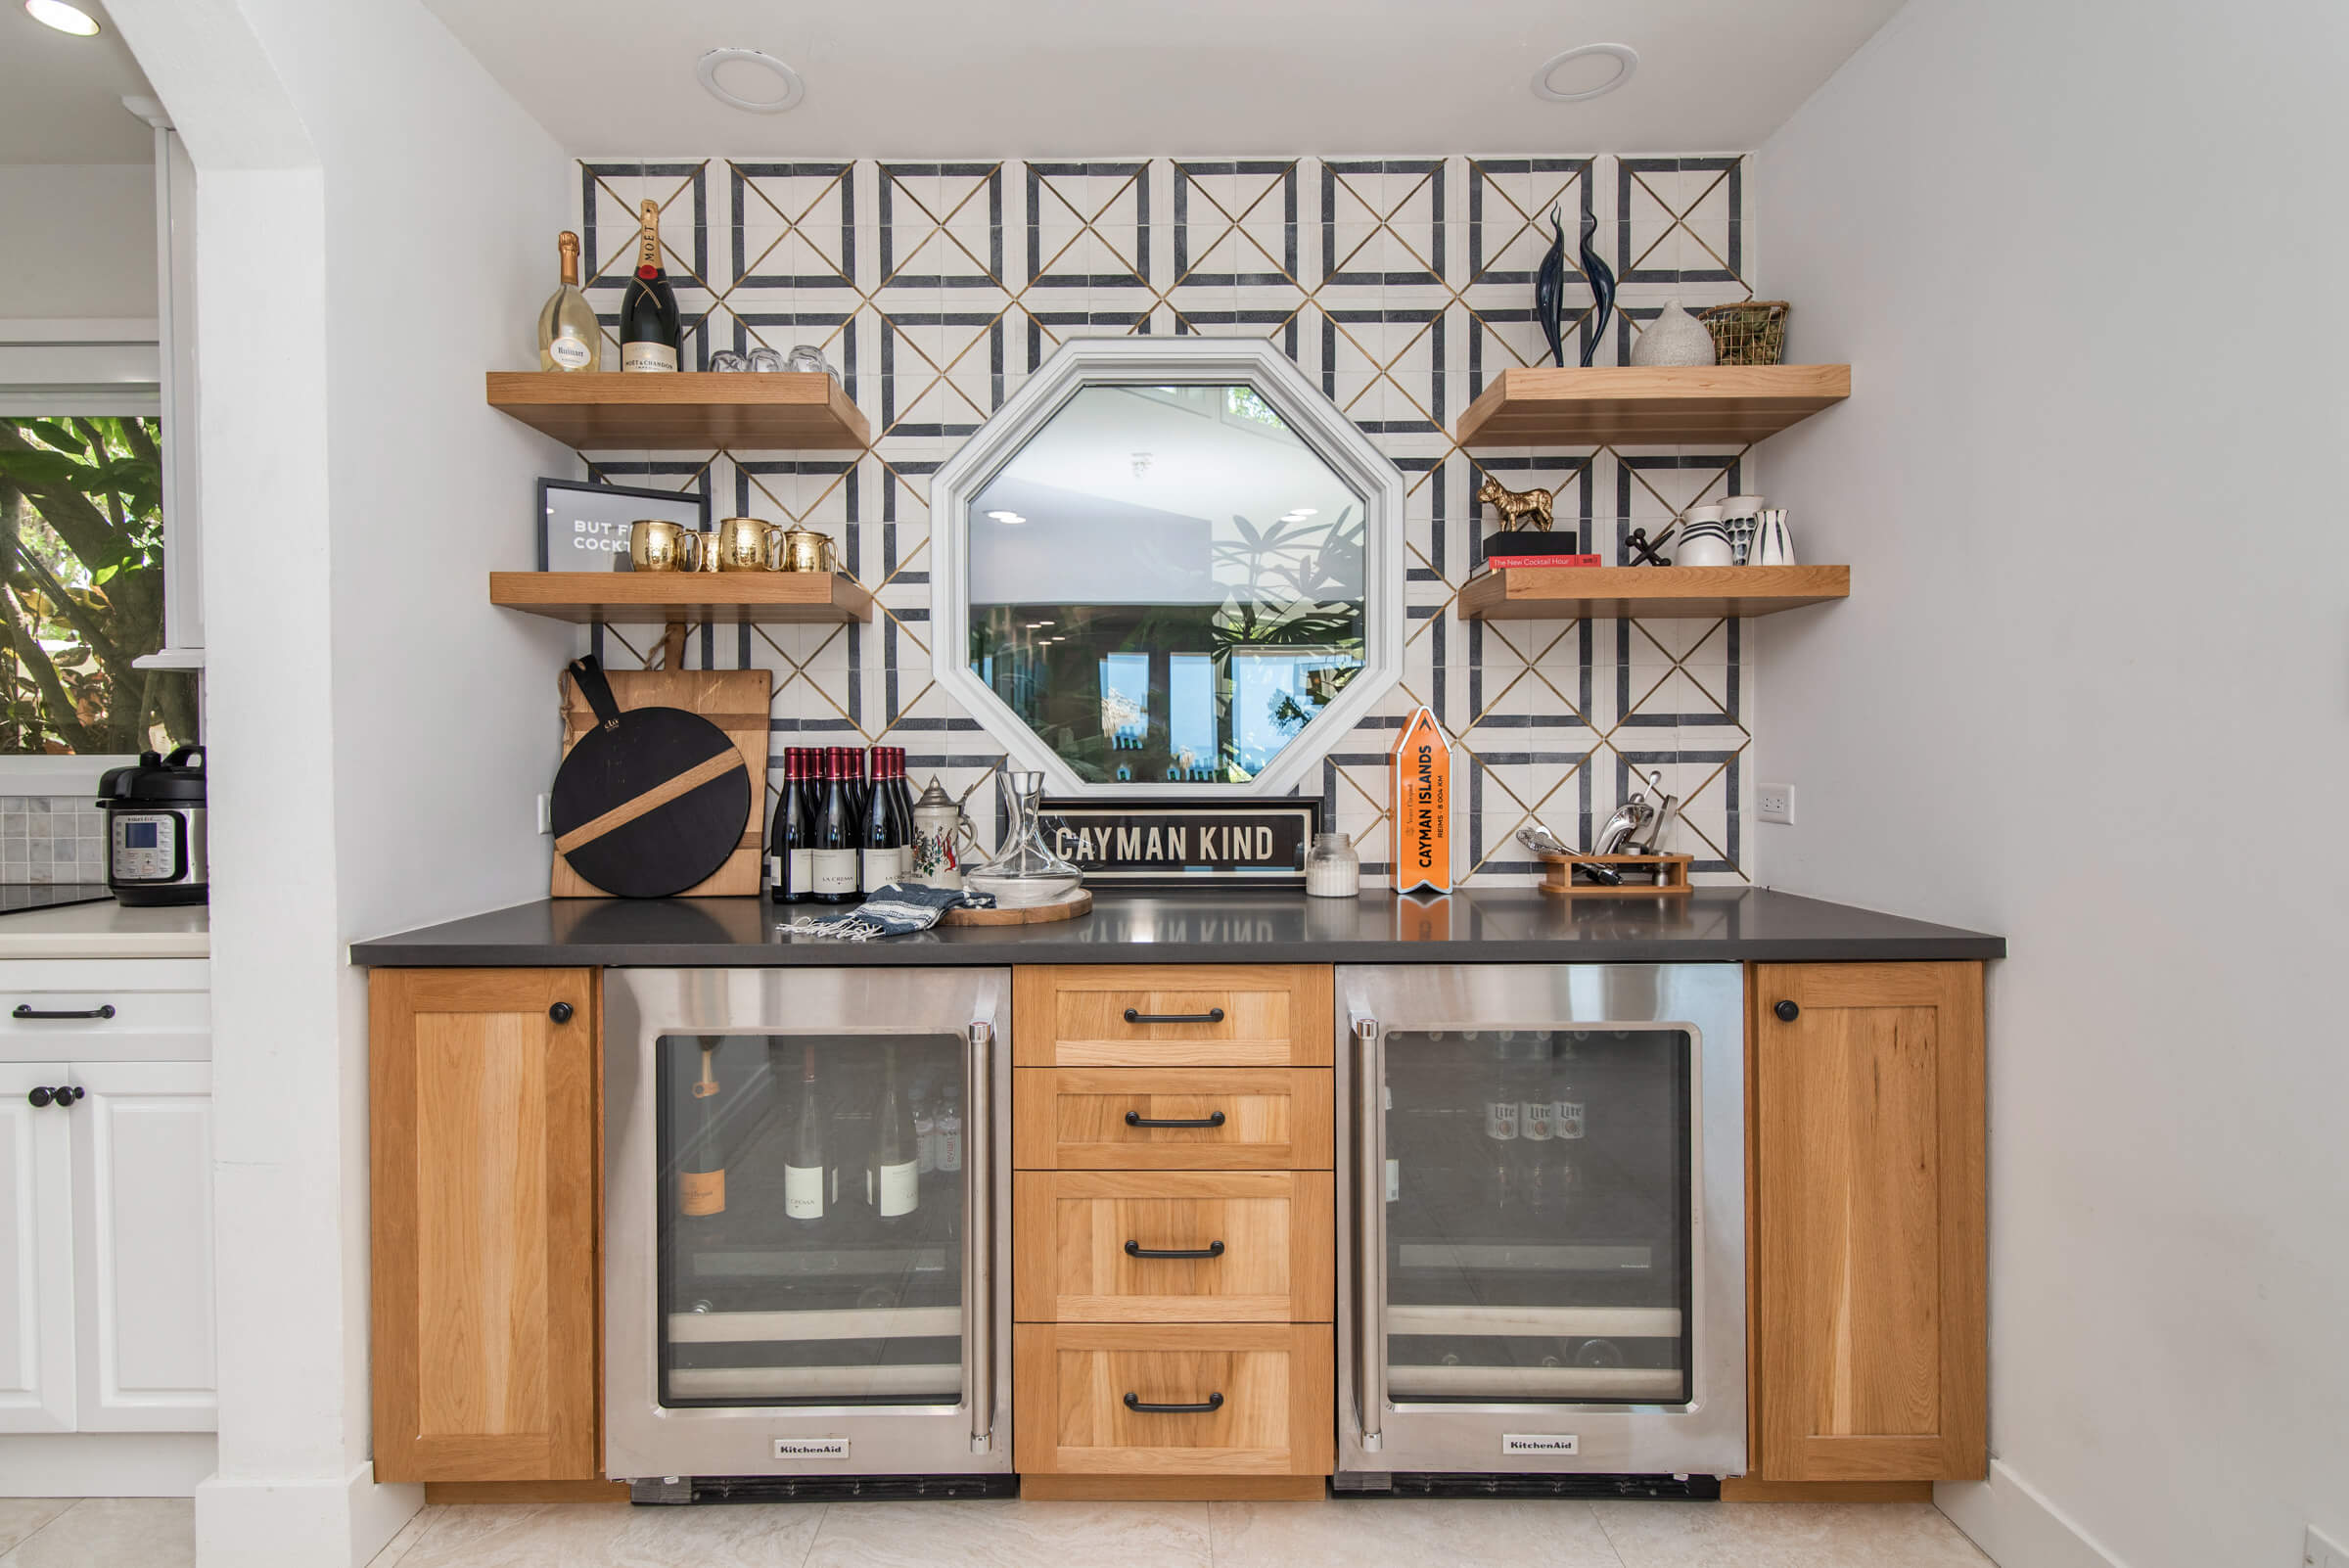 Seascape Villa Cayman Islands Grand Cayman Family Beachfront Luxury Caribbean Vacation Rental Fully Equipped Kitchen and Bar